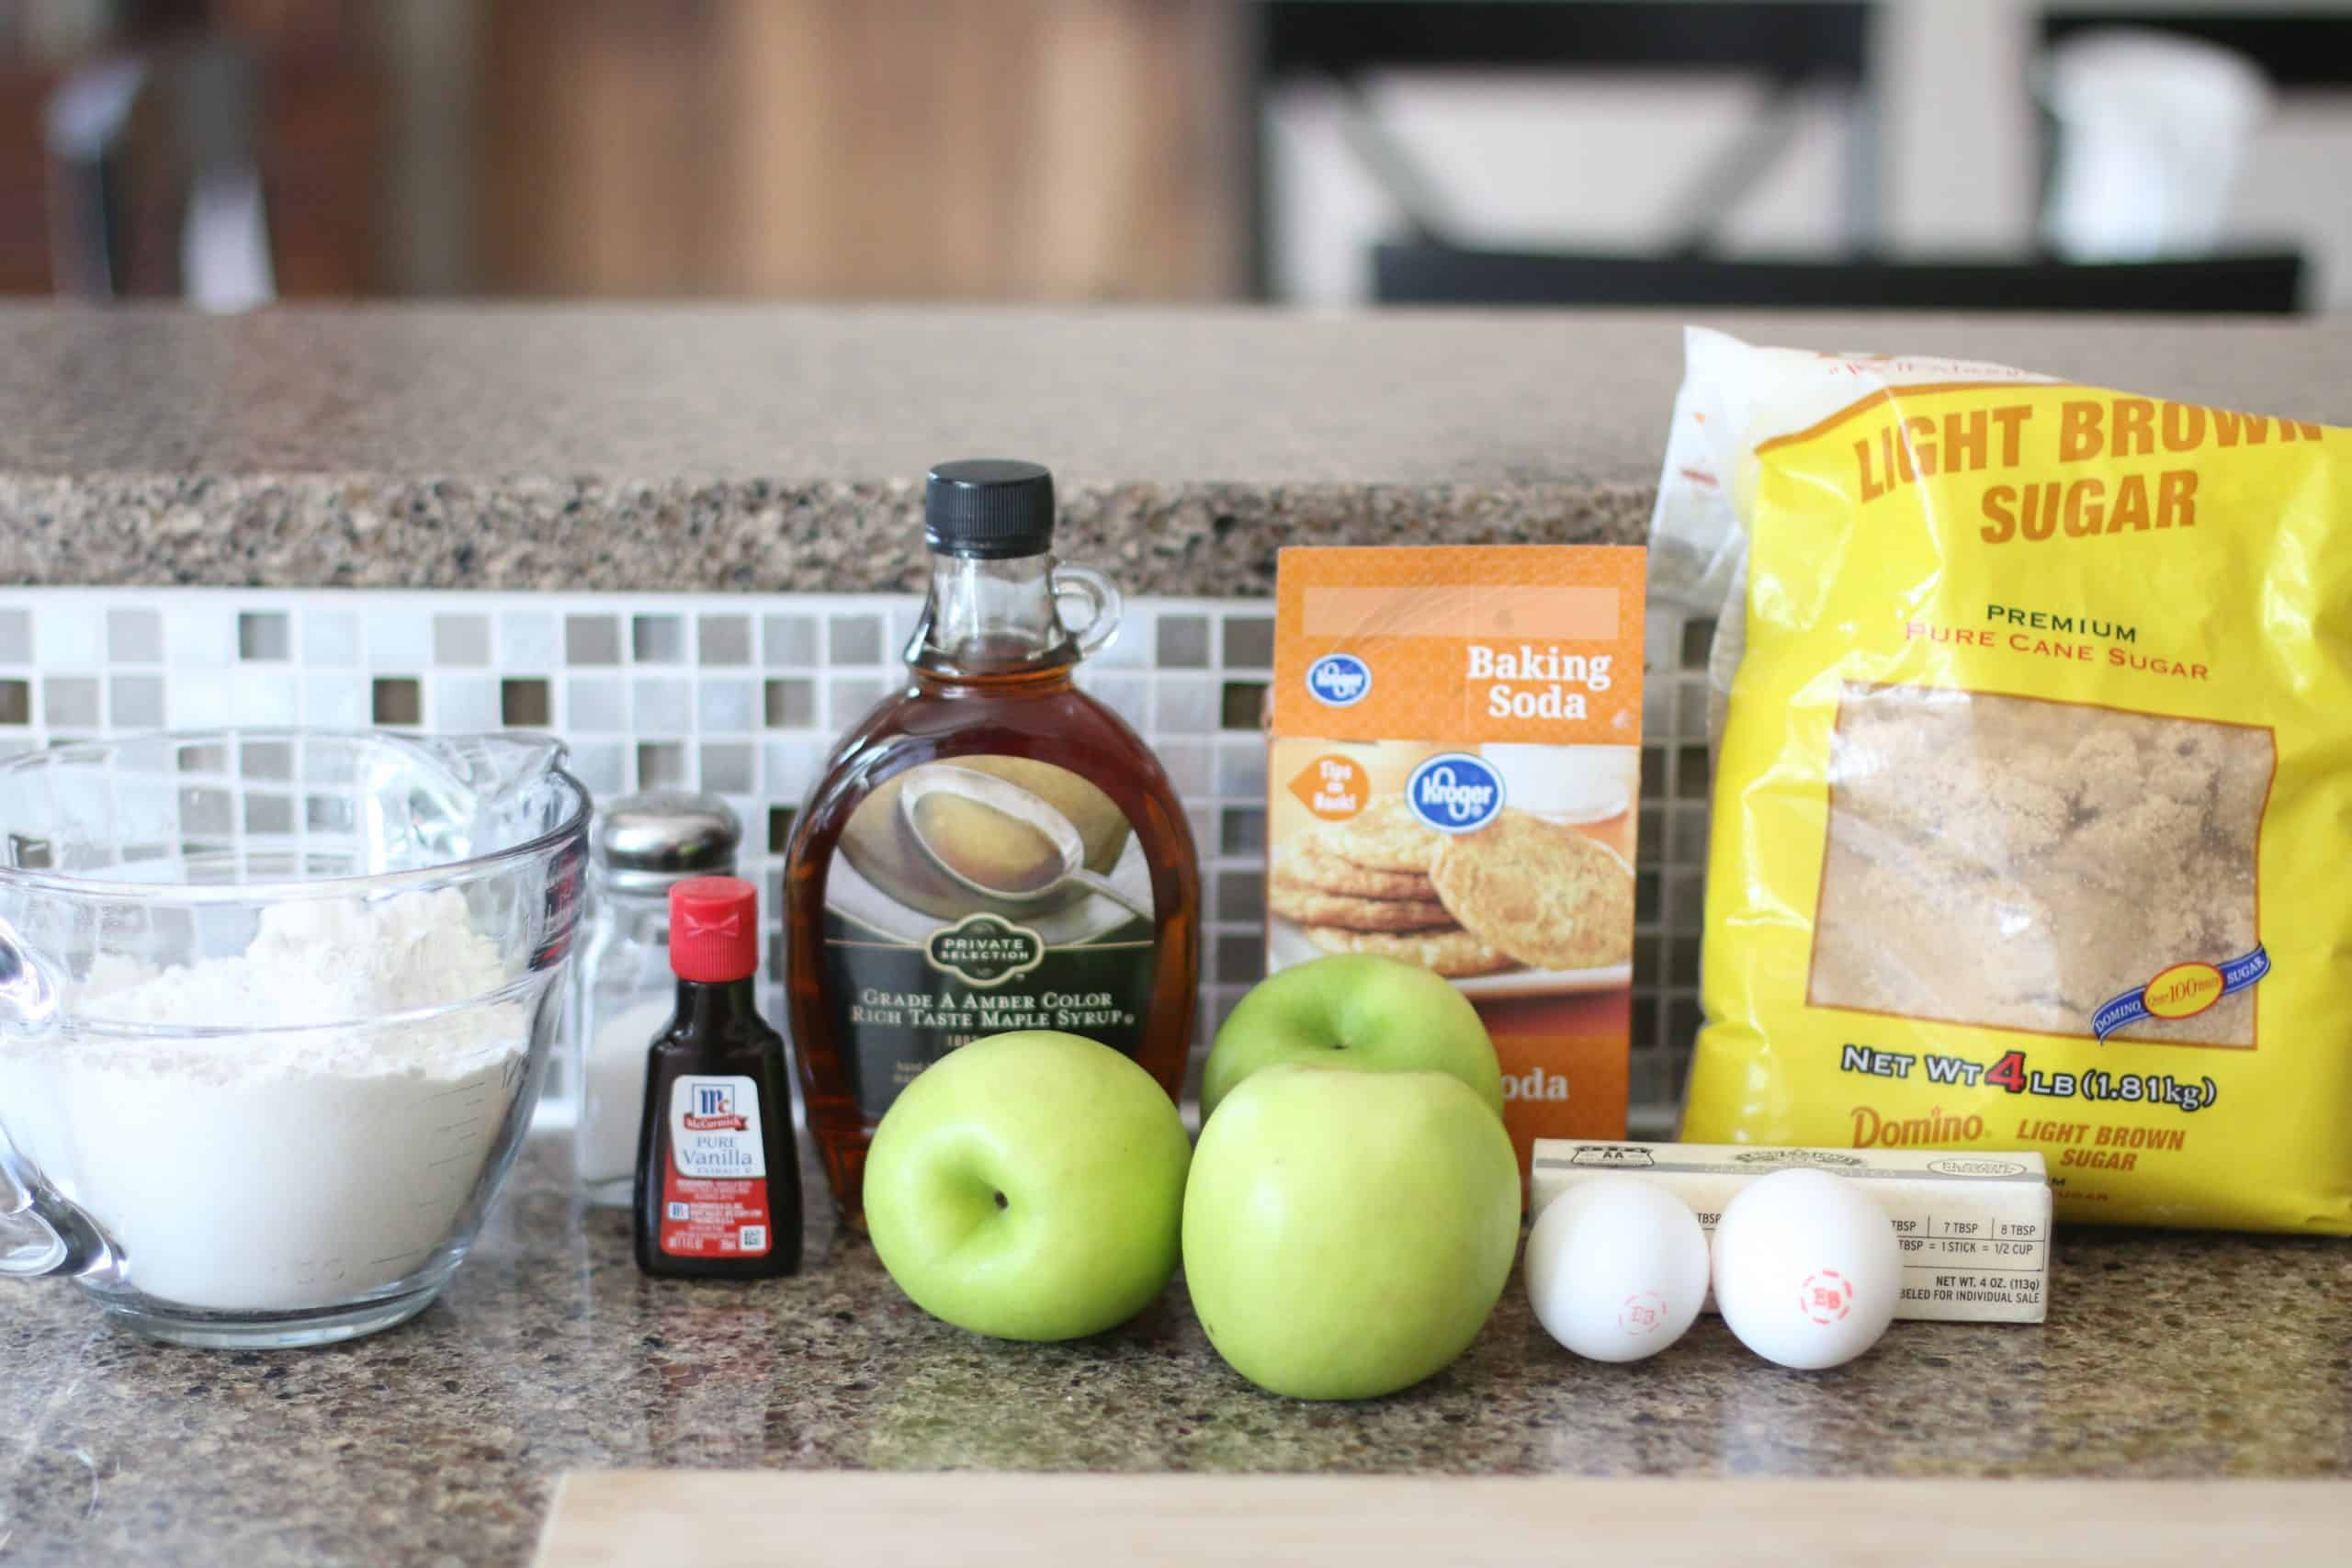 light brown sugar, unsalted butter, maple syrup, vanilla extract, large eggs, all-purpose flour, salt, baking soda, Granny Smith apples.